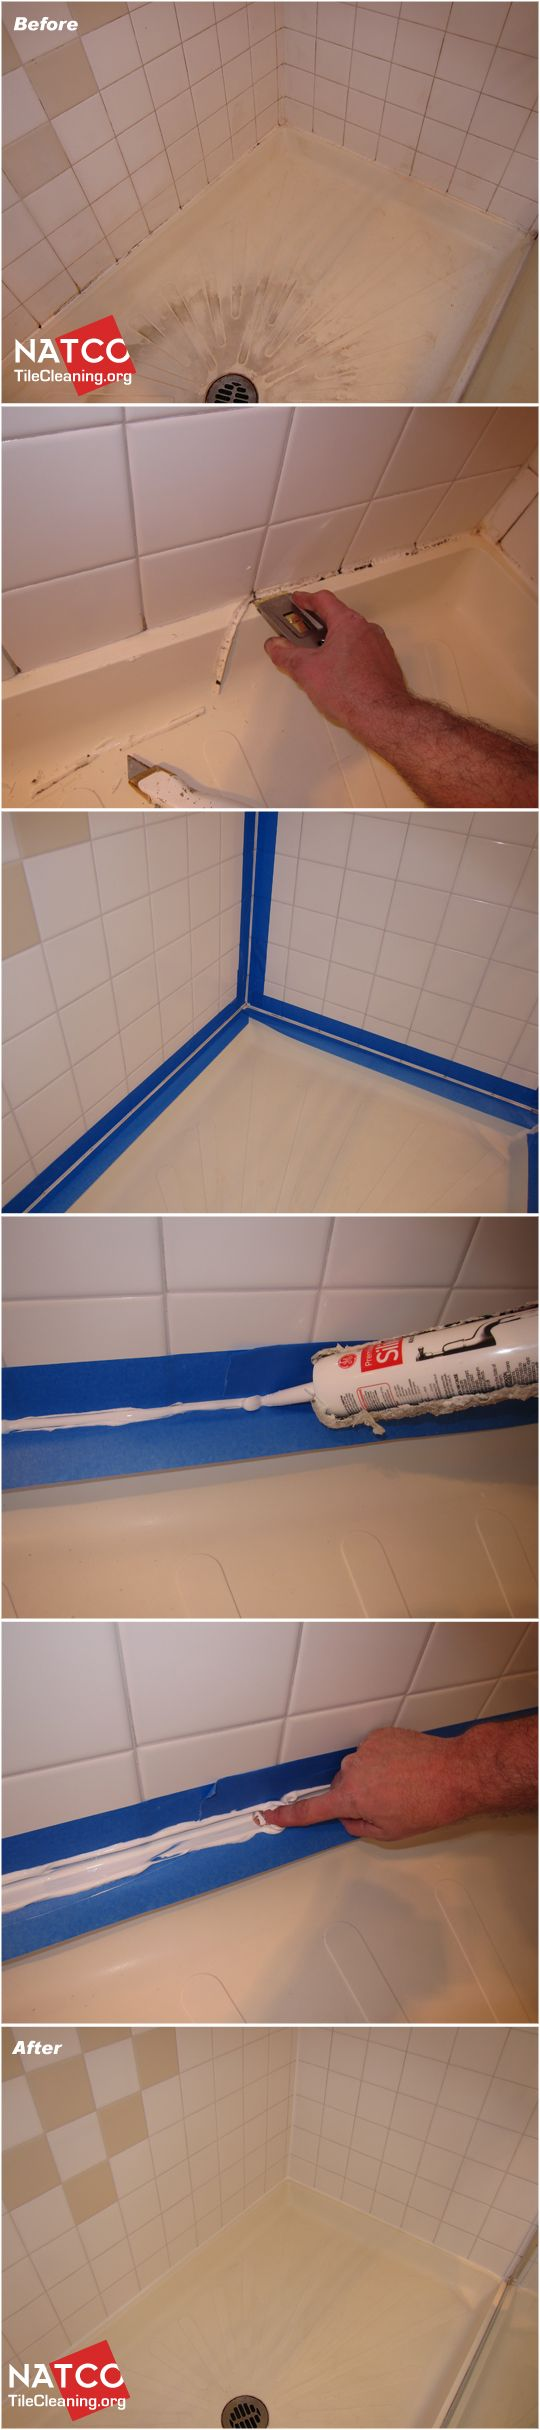 How to replace black moldy caulk and clean a tile shower. Ugh. Gonna ...